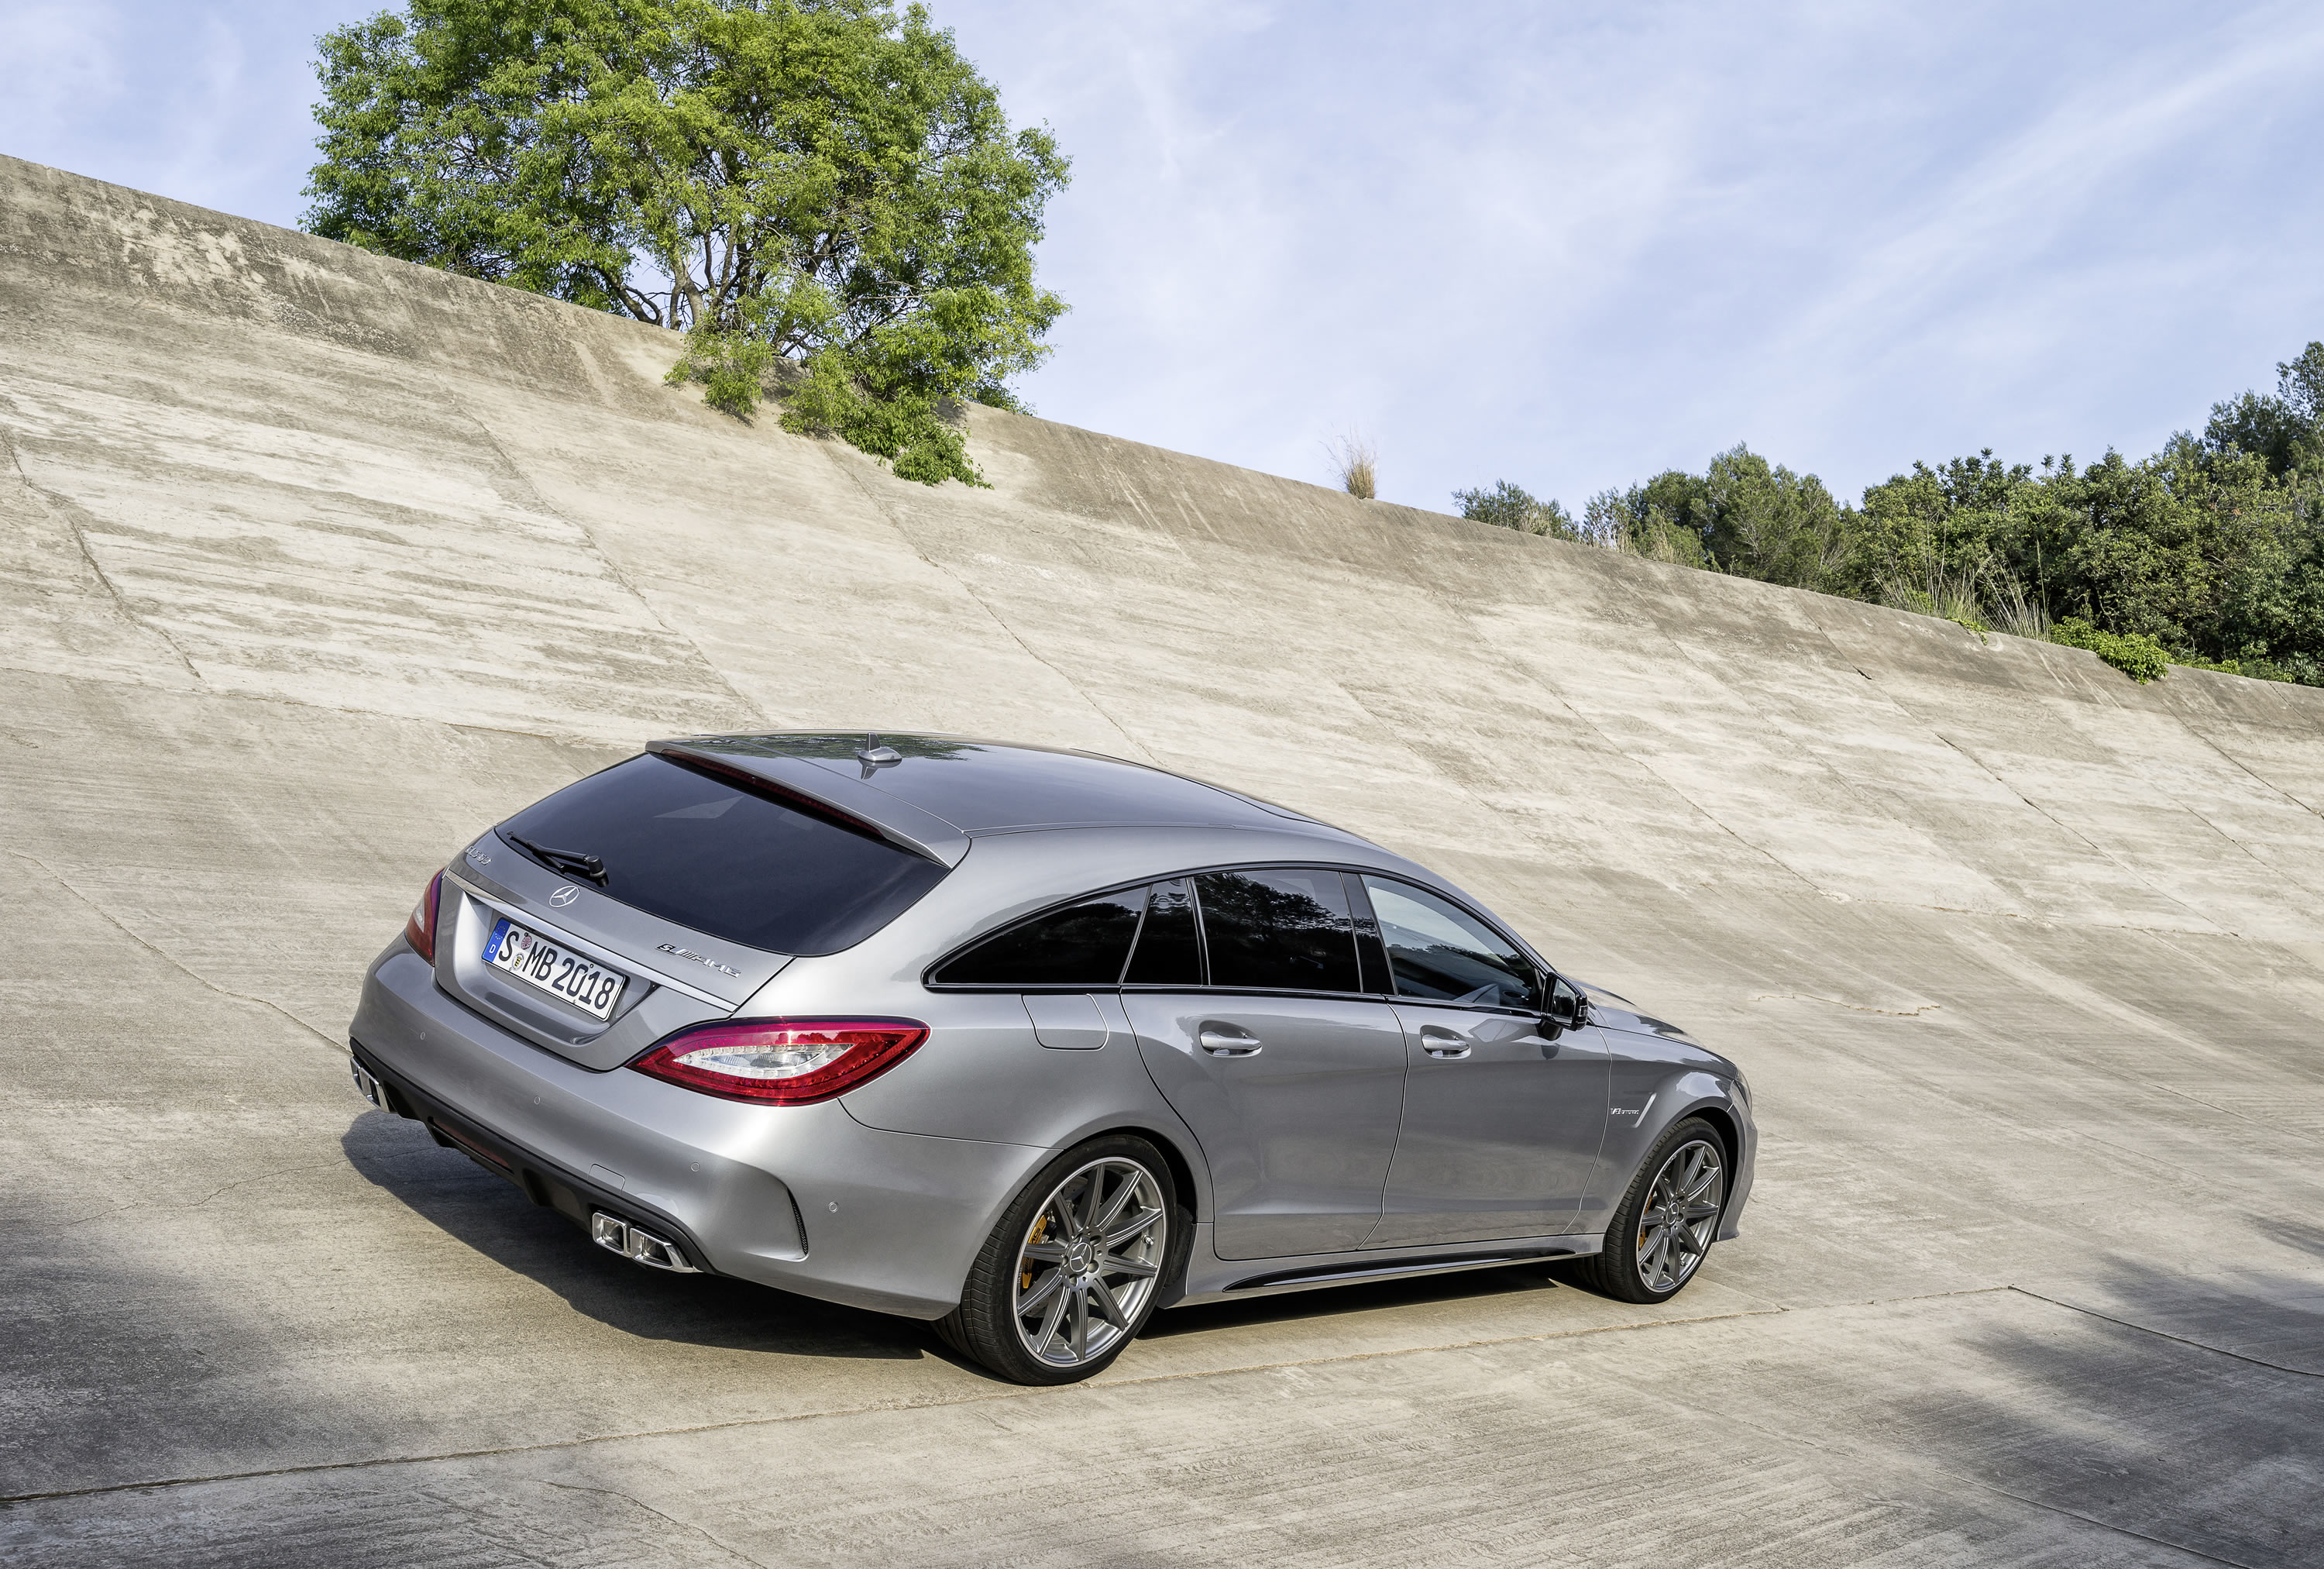 2015 cls63 amg s model shooting brake - Mercedes Amg Cls63 2015